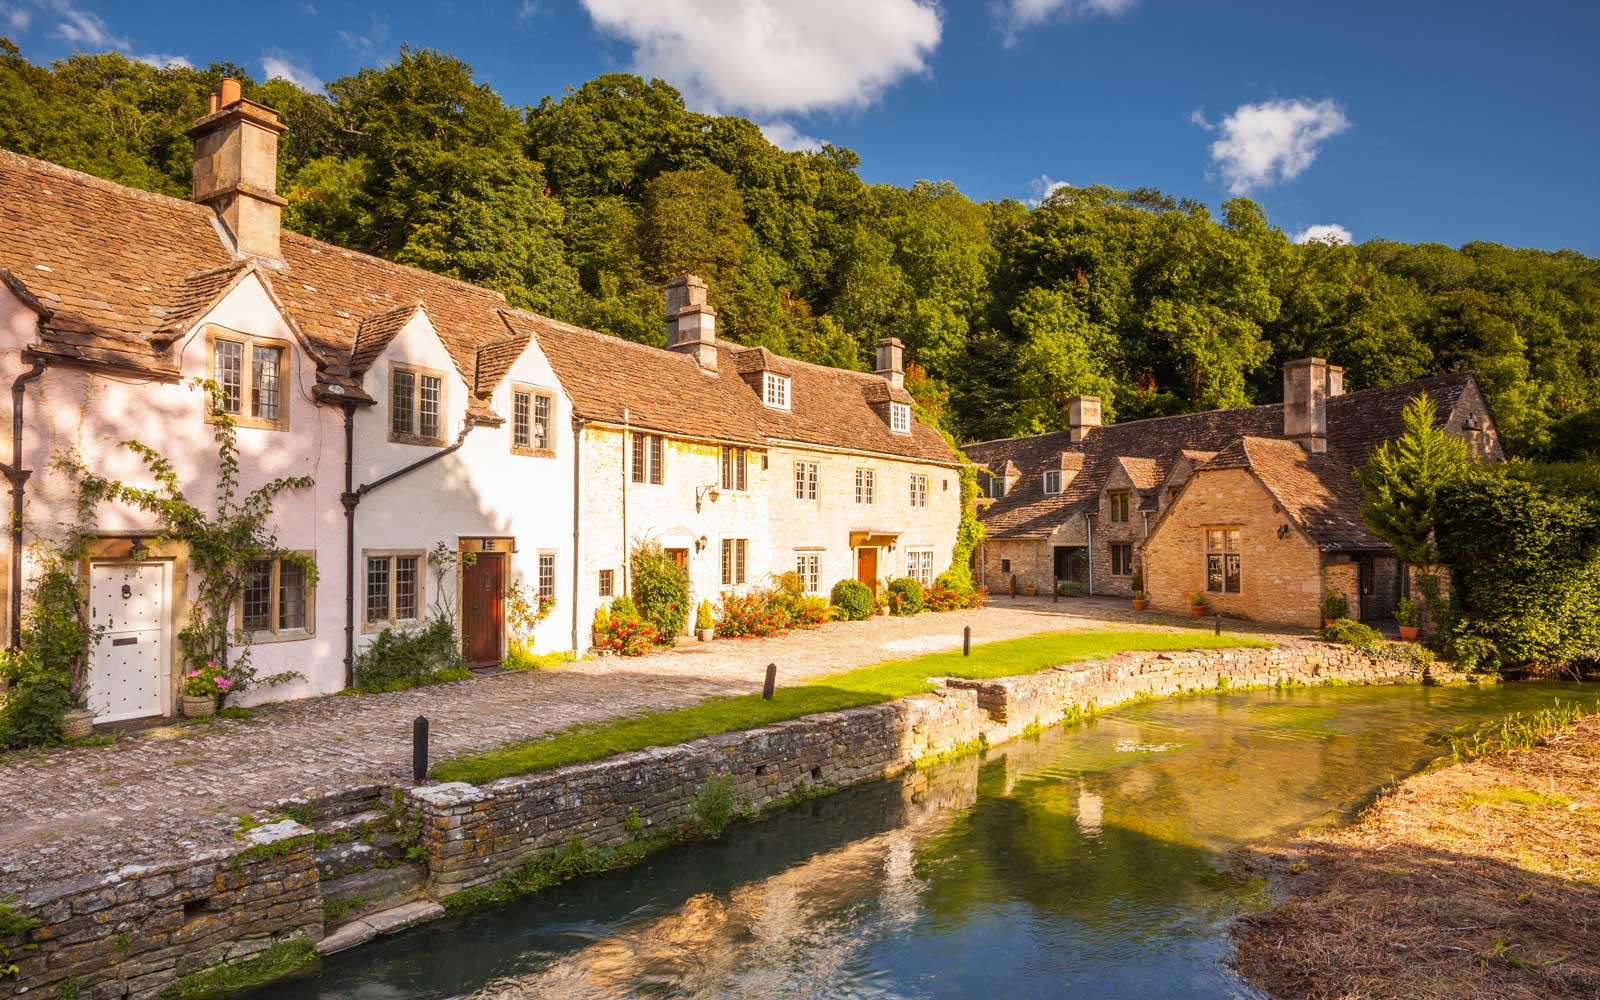 Cotswolds village of Castle Combe, north Wiltshire, England, United Kingdom, Europe